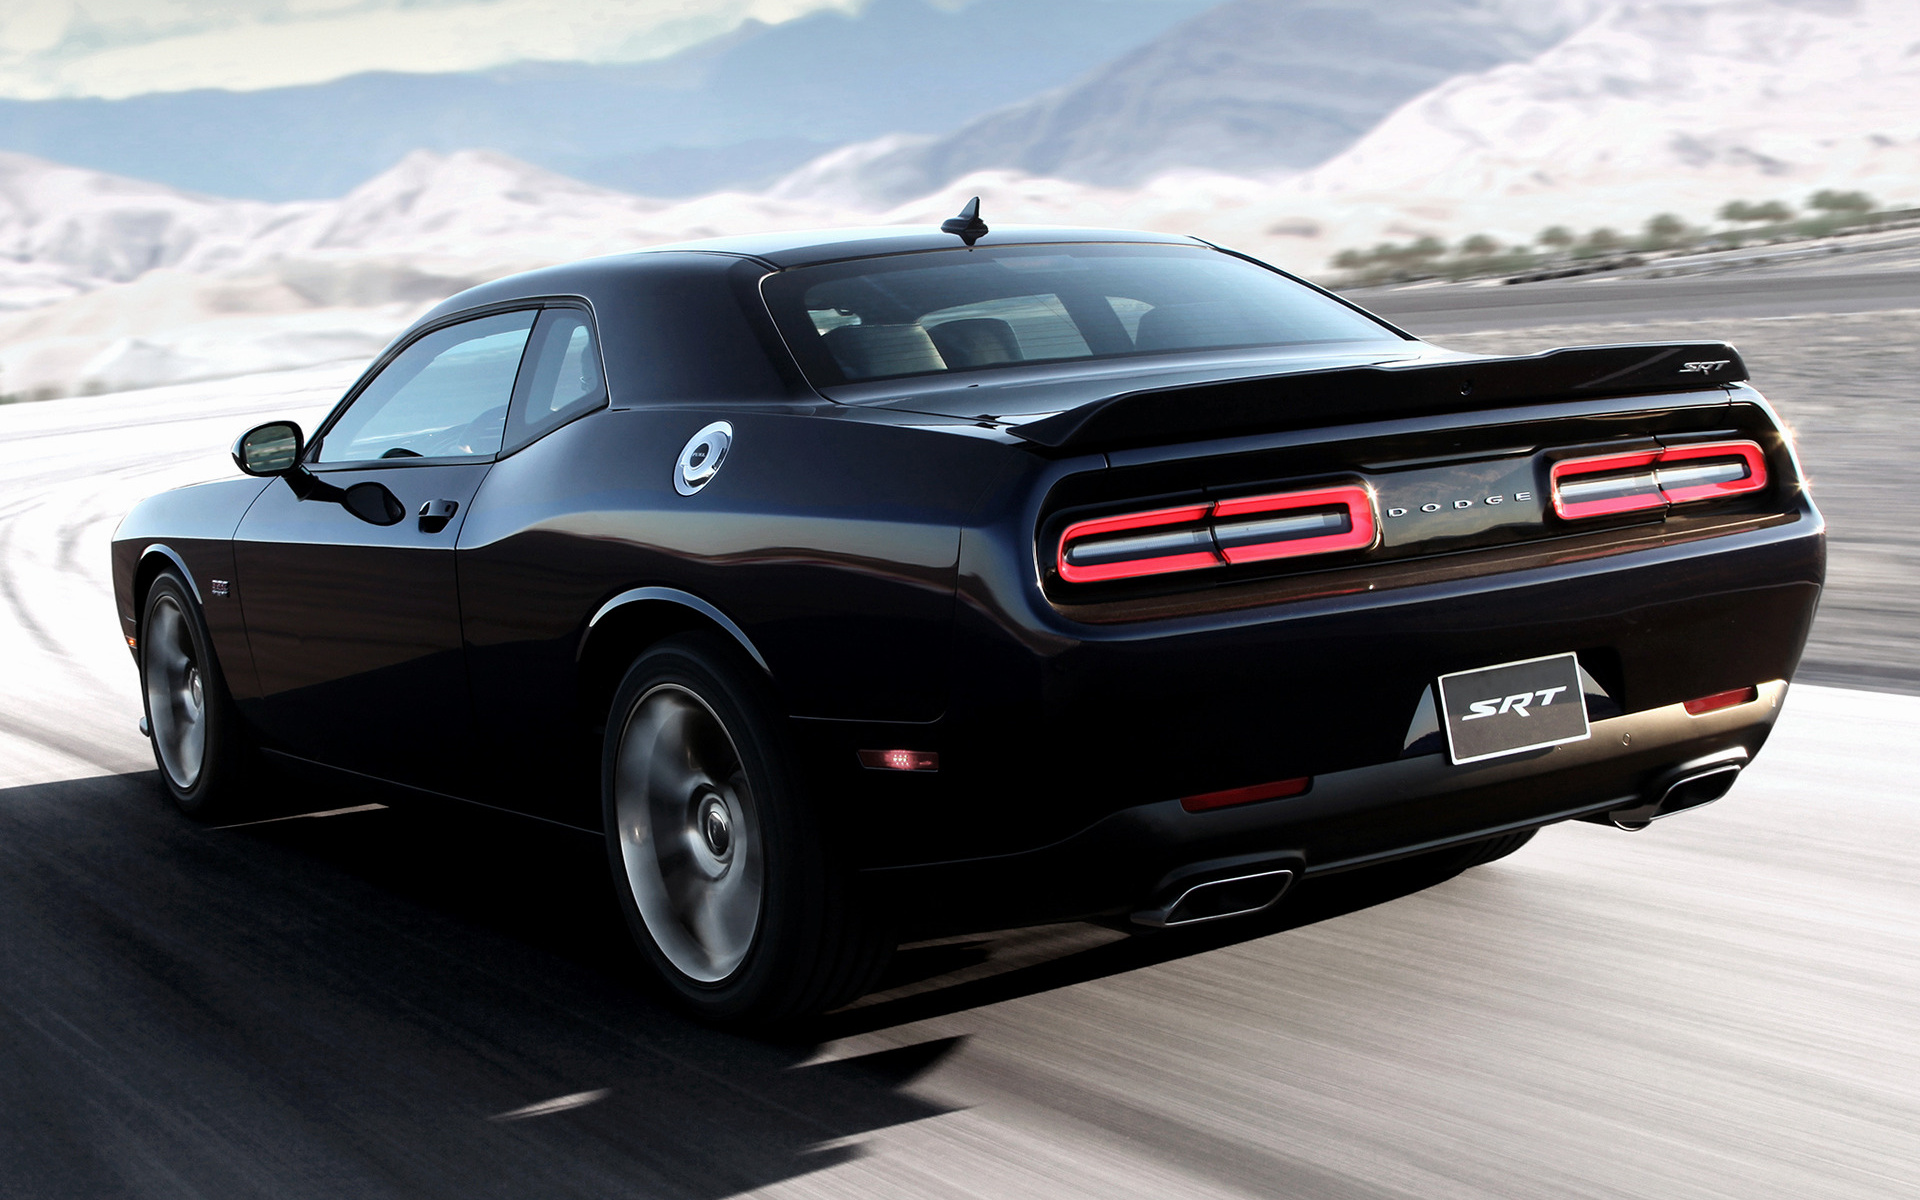 2015 Dodge Challenger Srt 392 Wallpapers And Hd Images